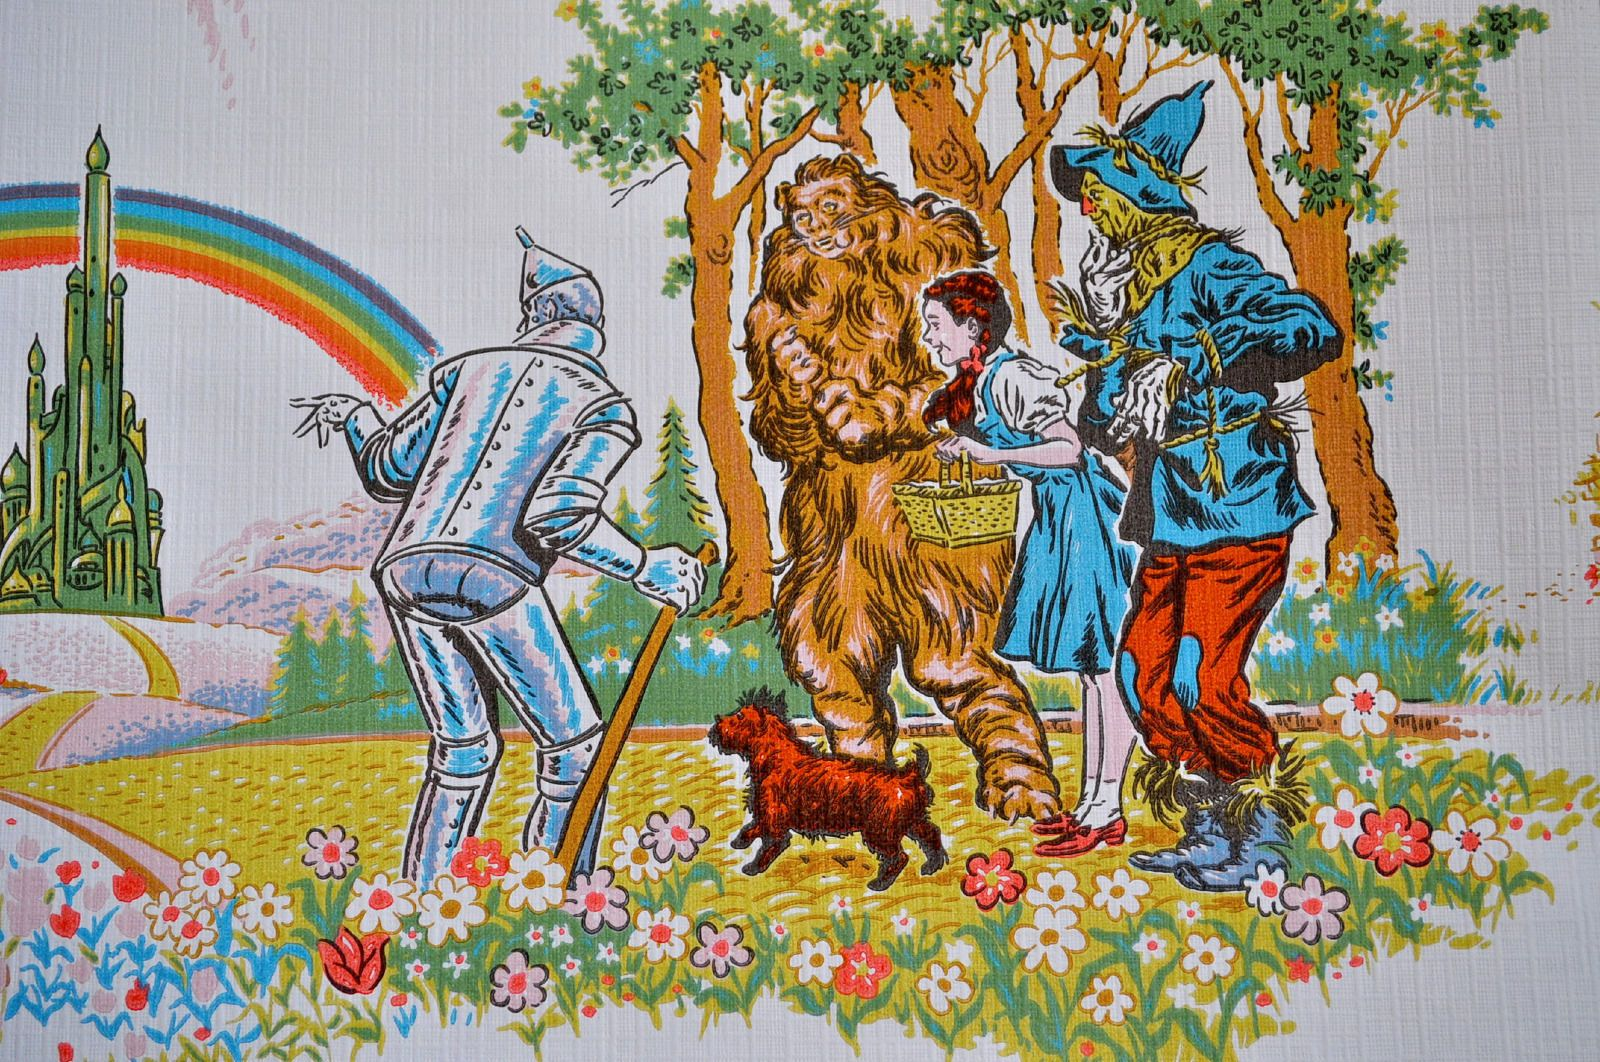 picture Wizard Of Oz Wallpaper old wizard of oz 1600x1062 wallpaper